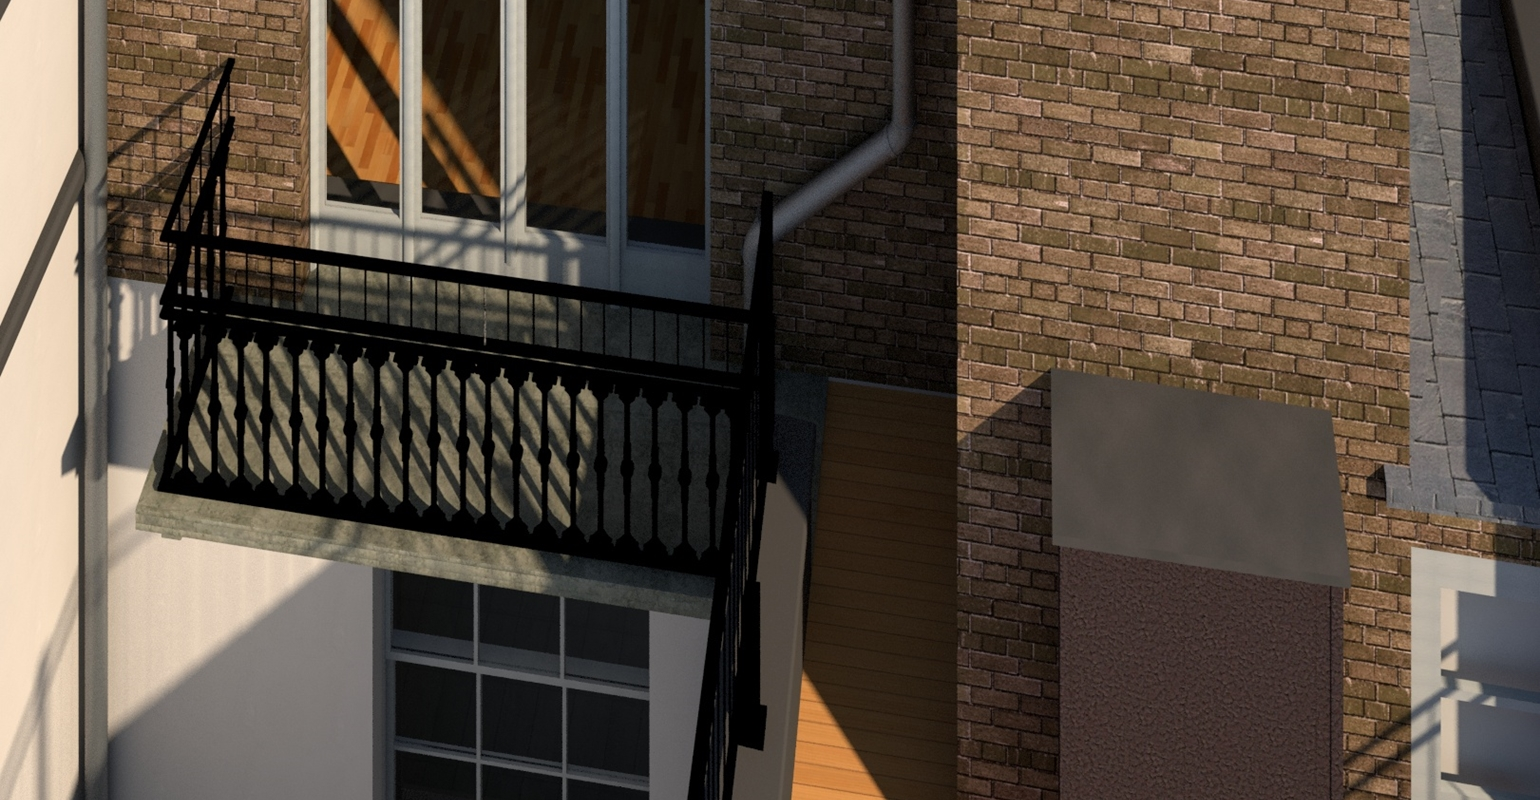 Revit model, balcony, drainage